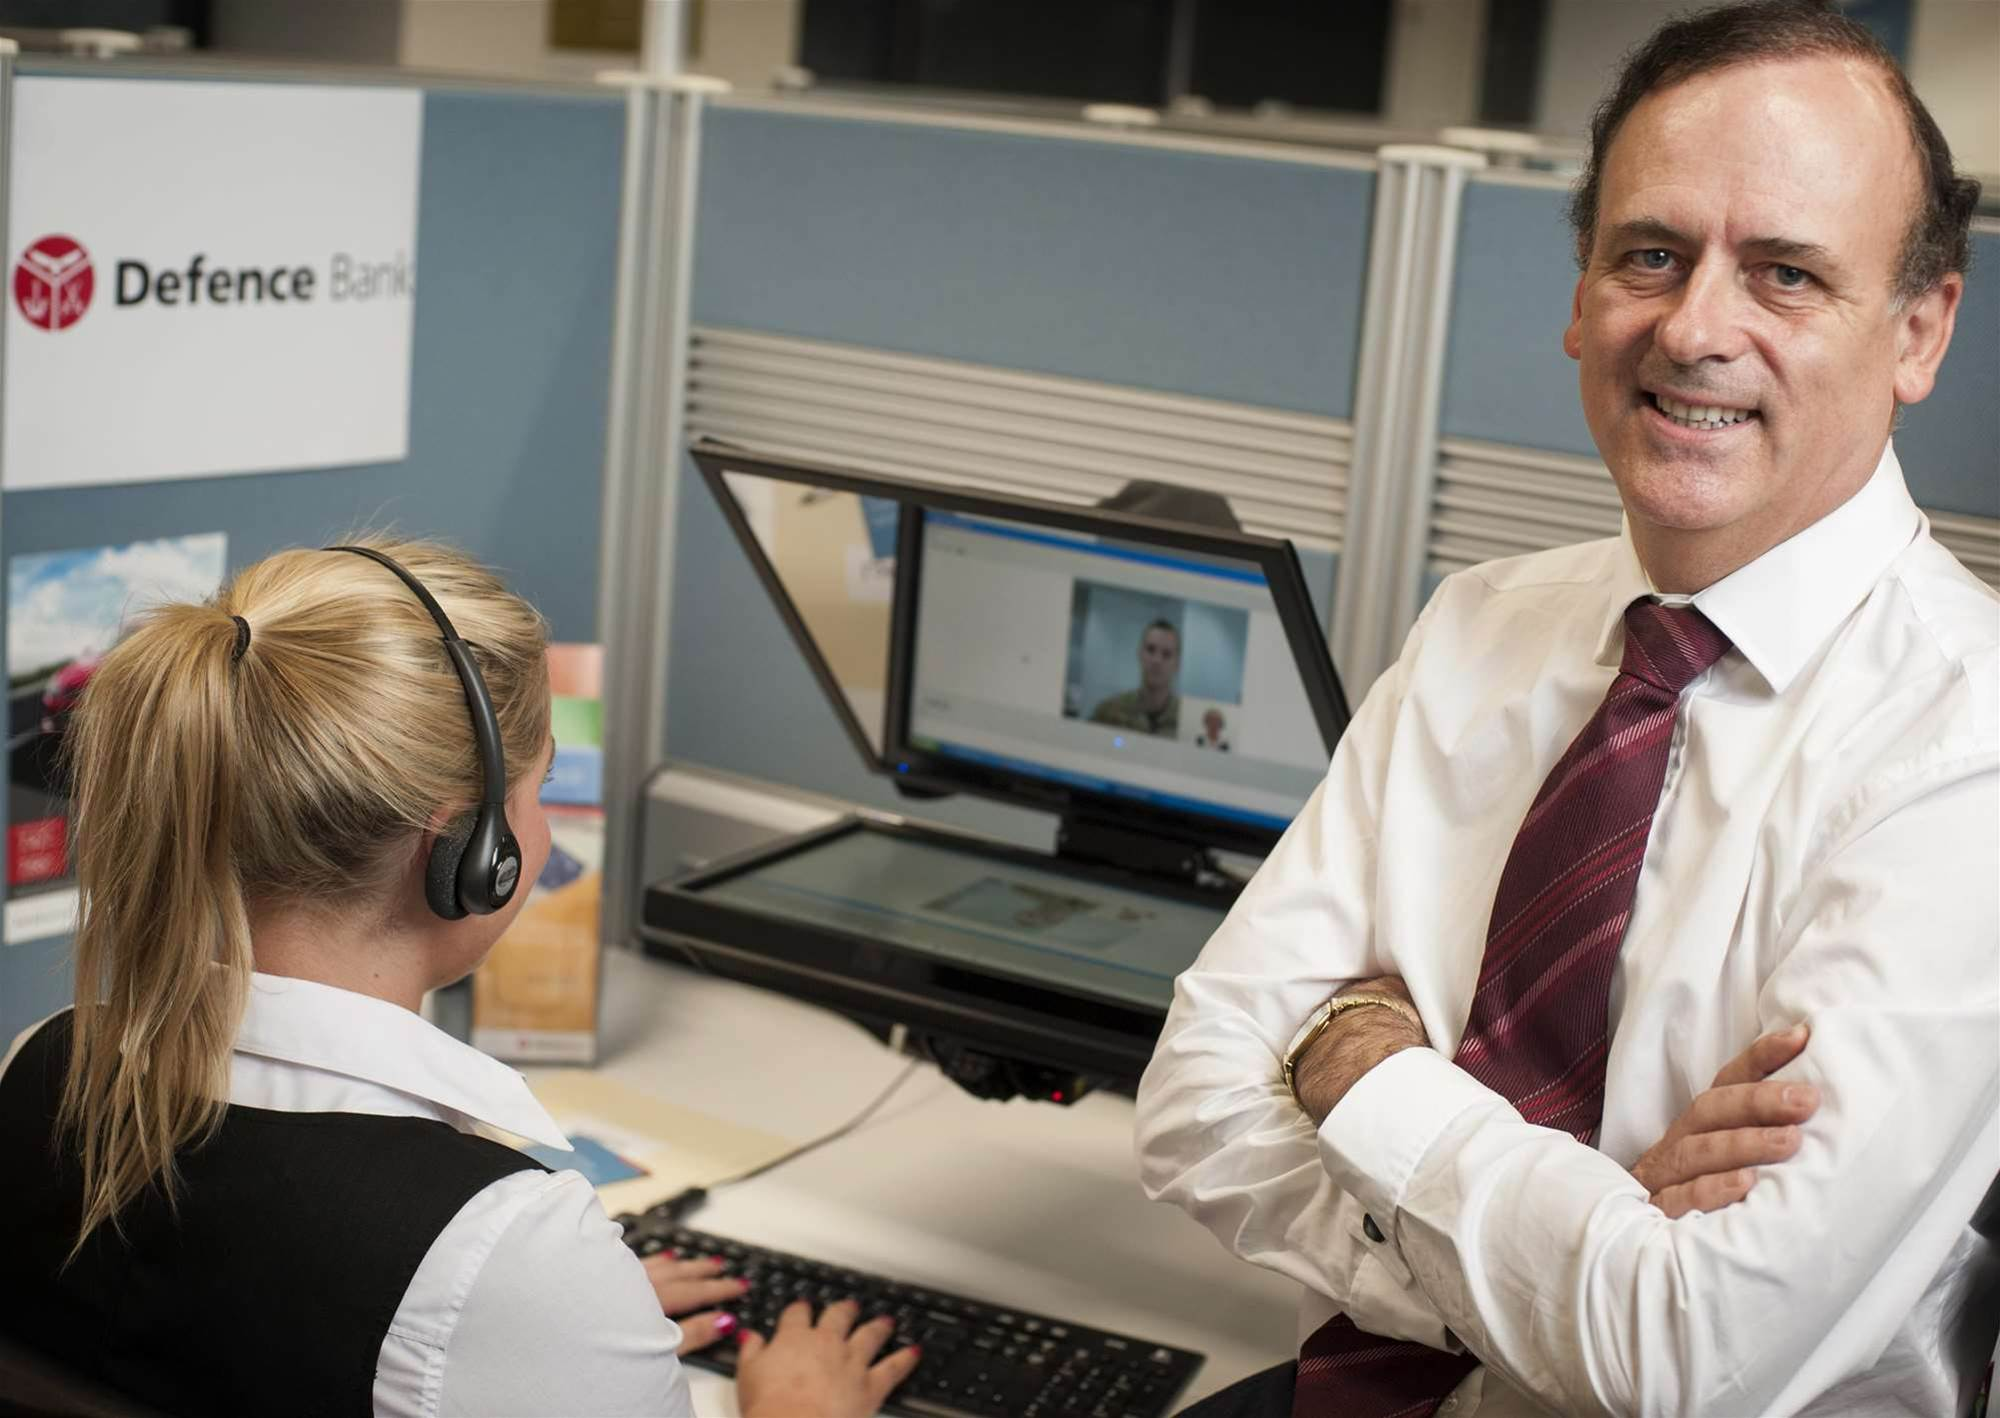 Defence Bank launches video banking service